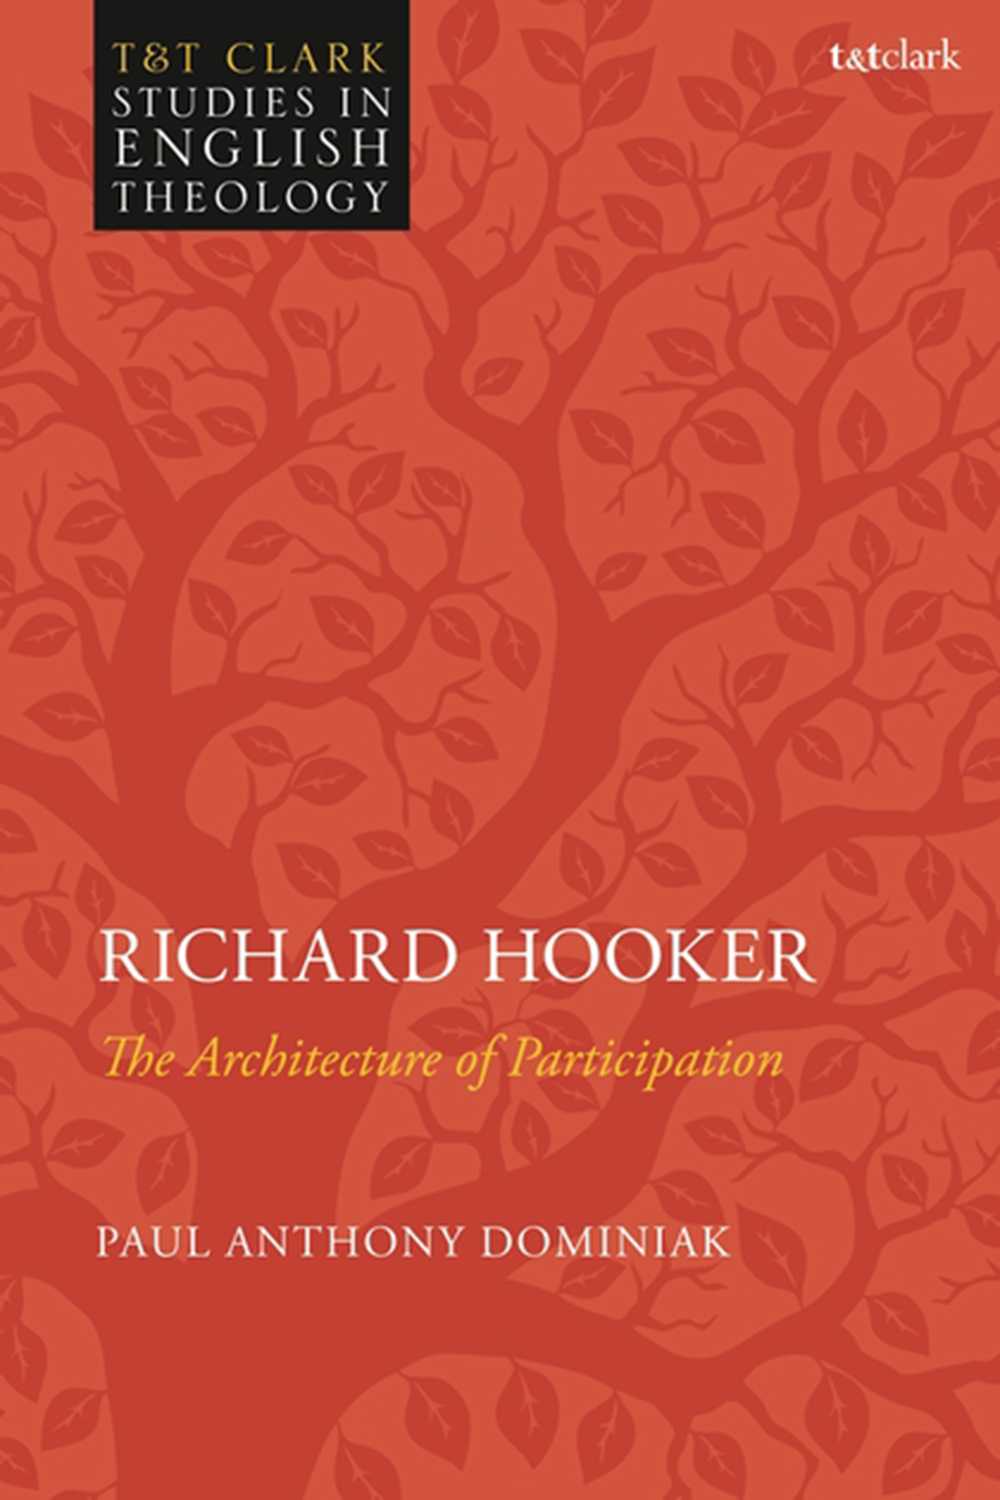 Richard Hooker: The Architecture of Participation